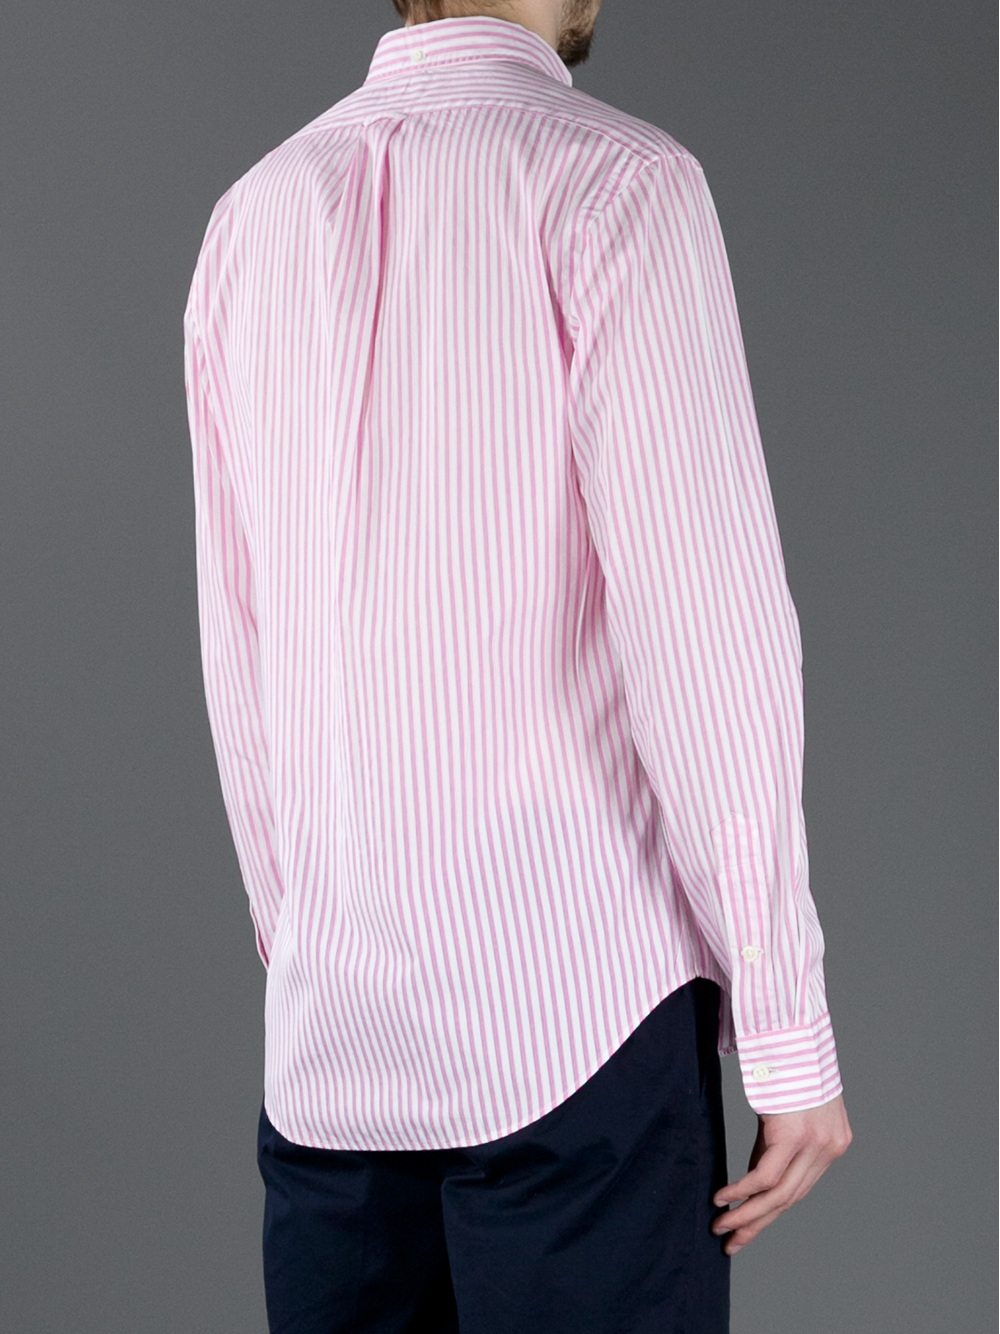 Polo ralph lauren striped shirt in pink for men lyst for Pink and white ralph lauren shirt